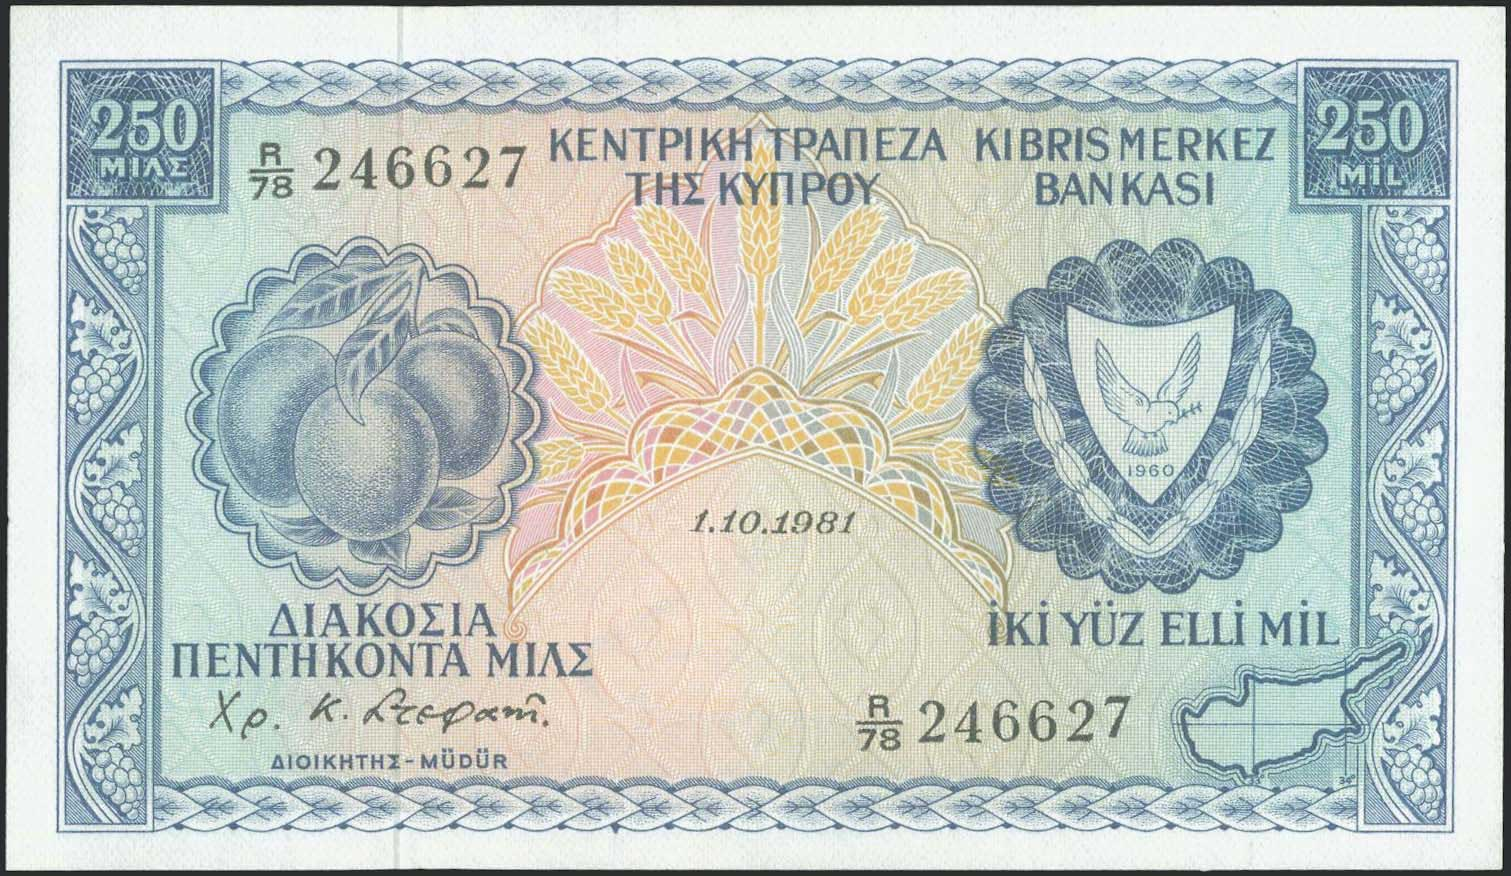 Lot 6369 - CYPRUS-  PAPER MONEY - BANKNOTES banknotes of cyprus -  A. Karamitsos Public & LIVE Bid Auction 588 Coins, Medals & Banknotes